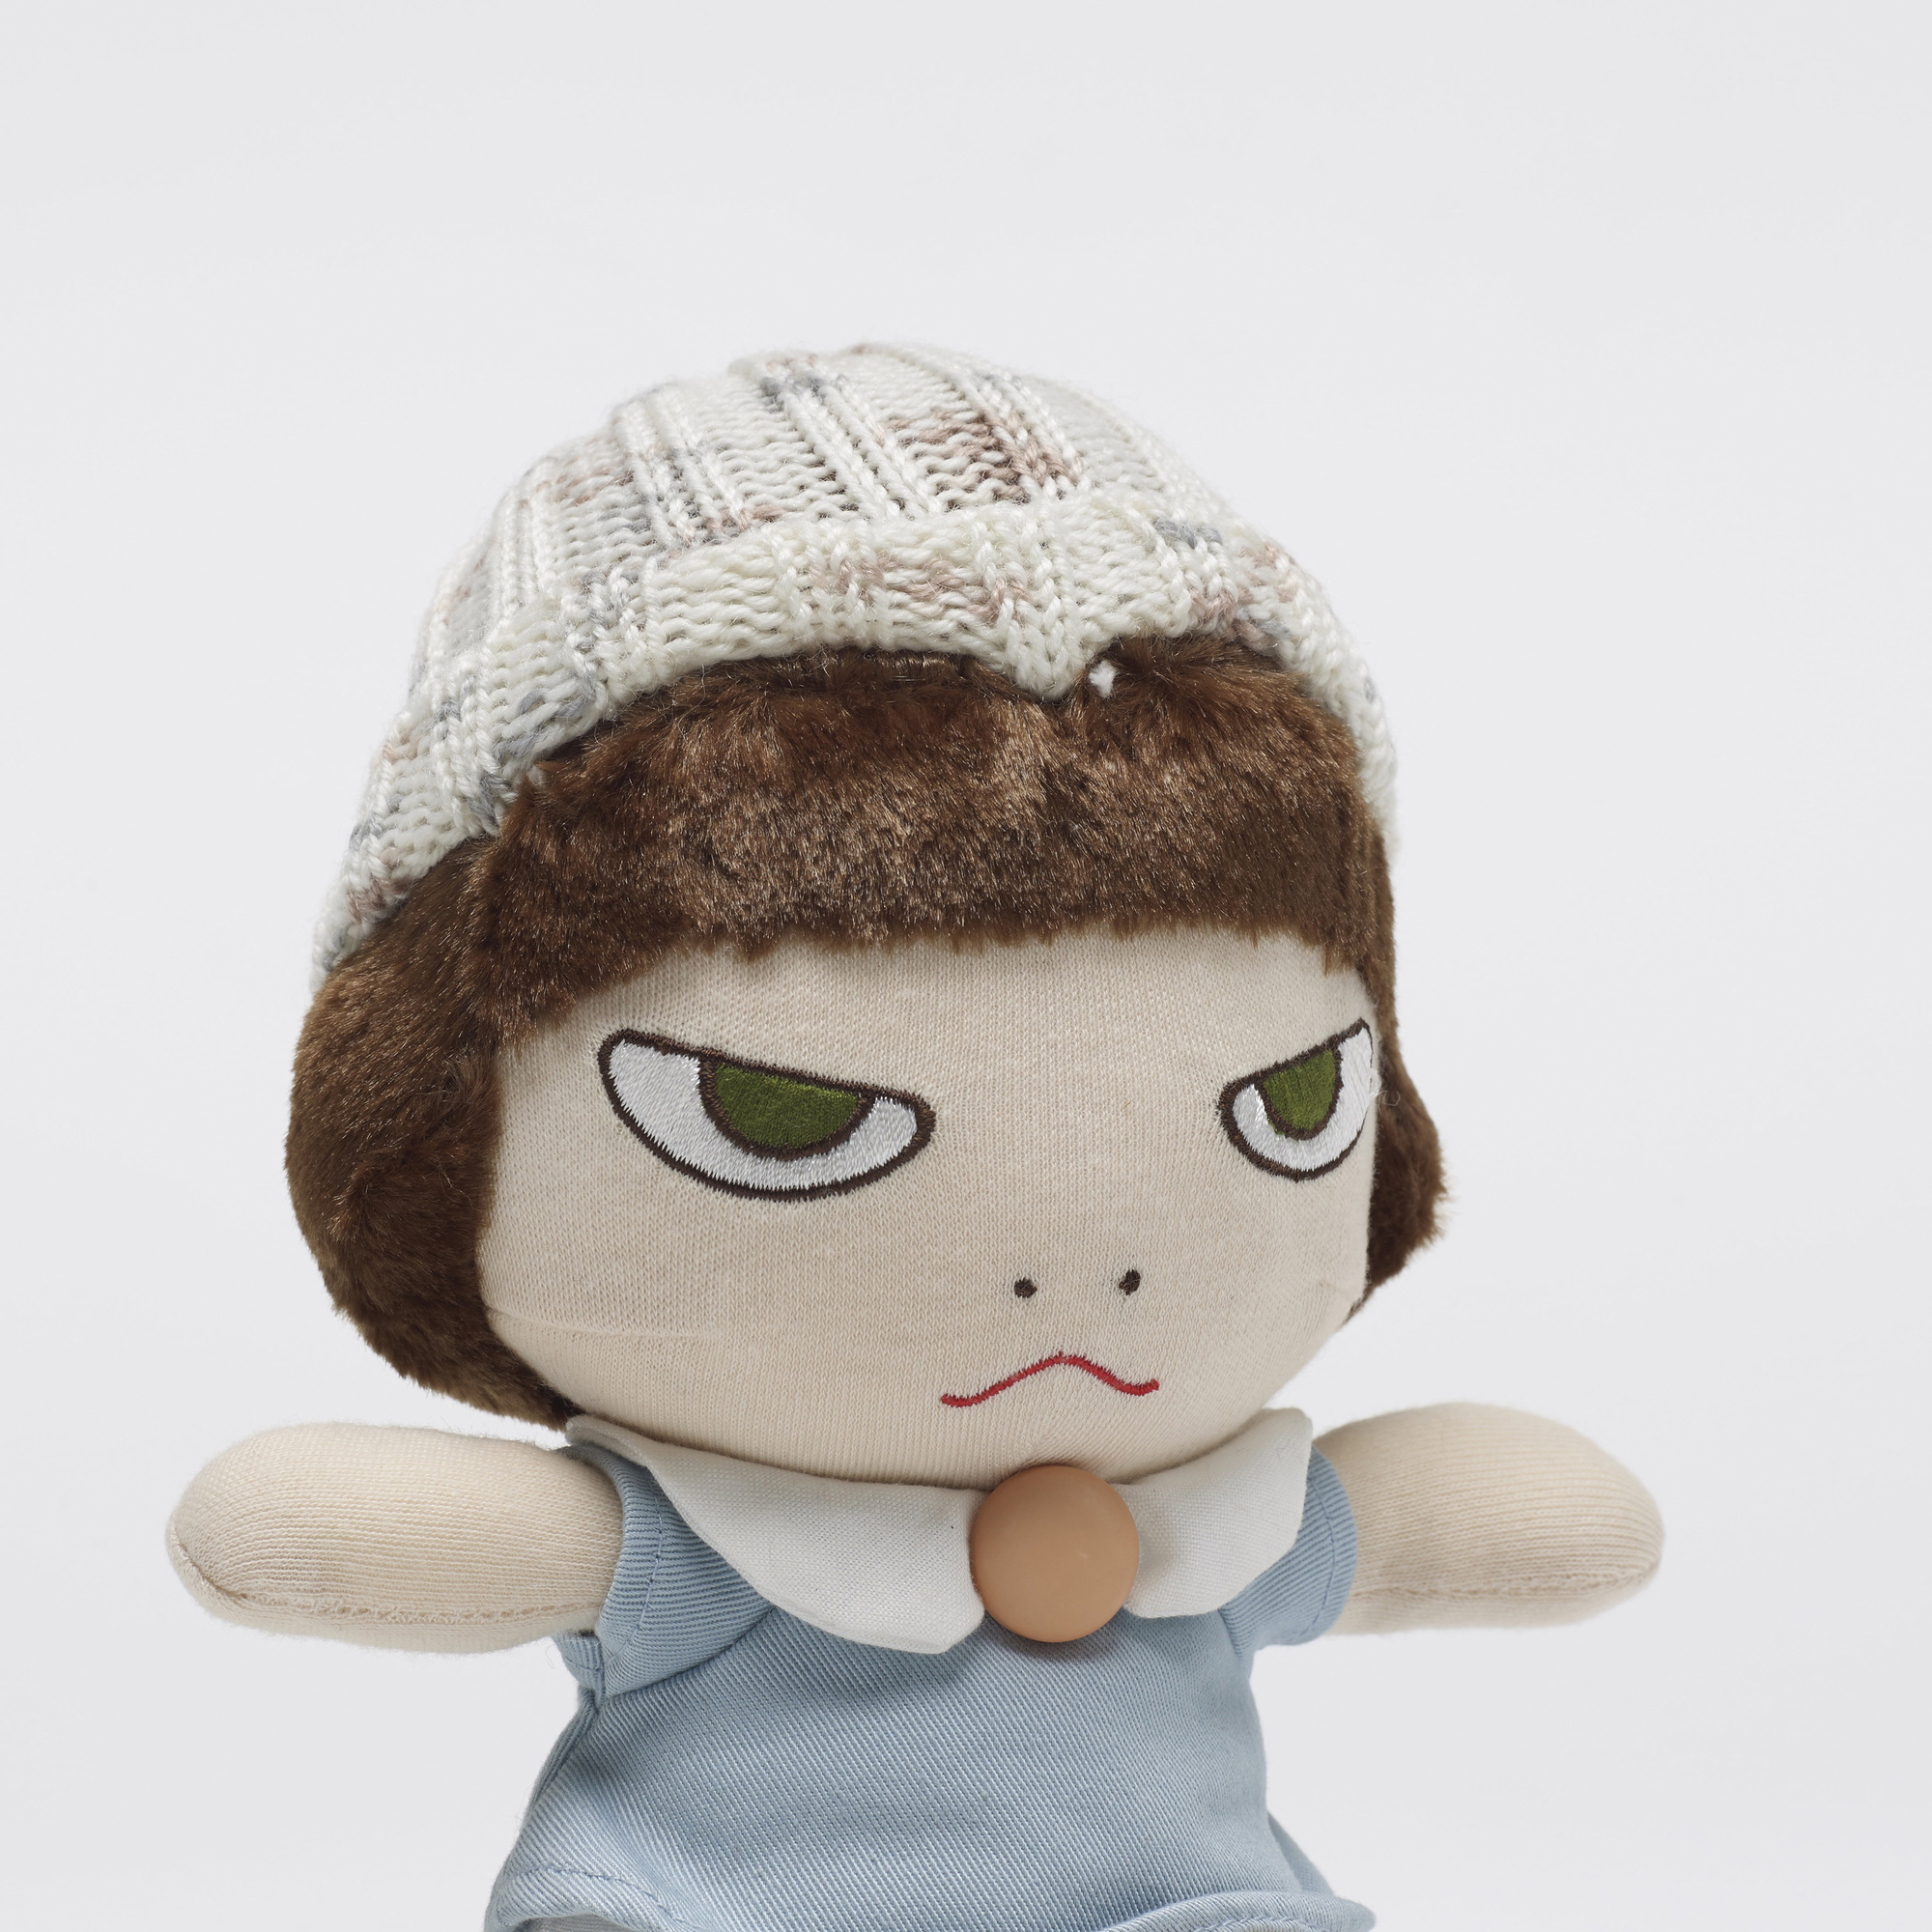 628: Yoshitomo Nara / Walk On doll (2 of 3)